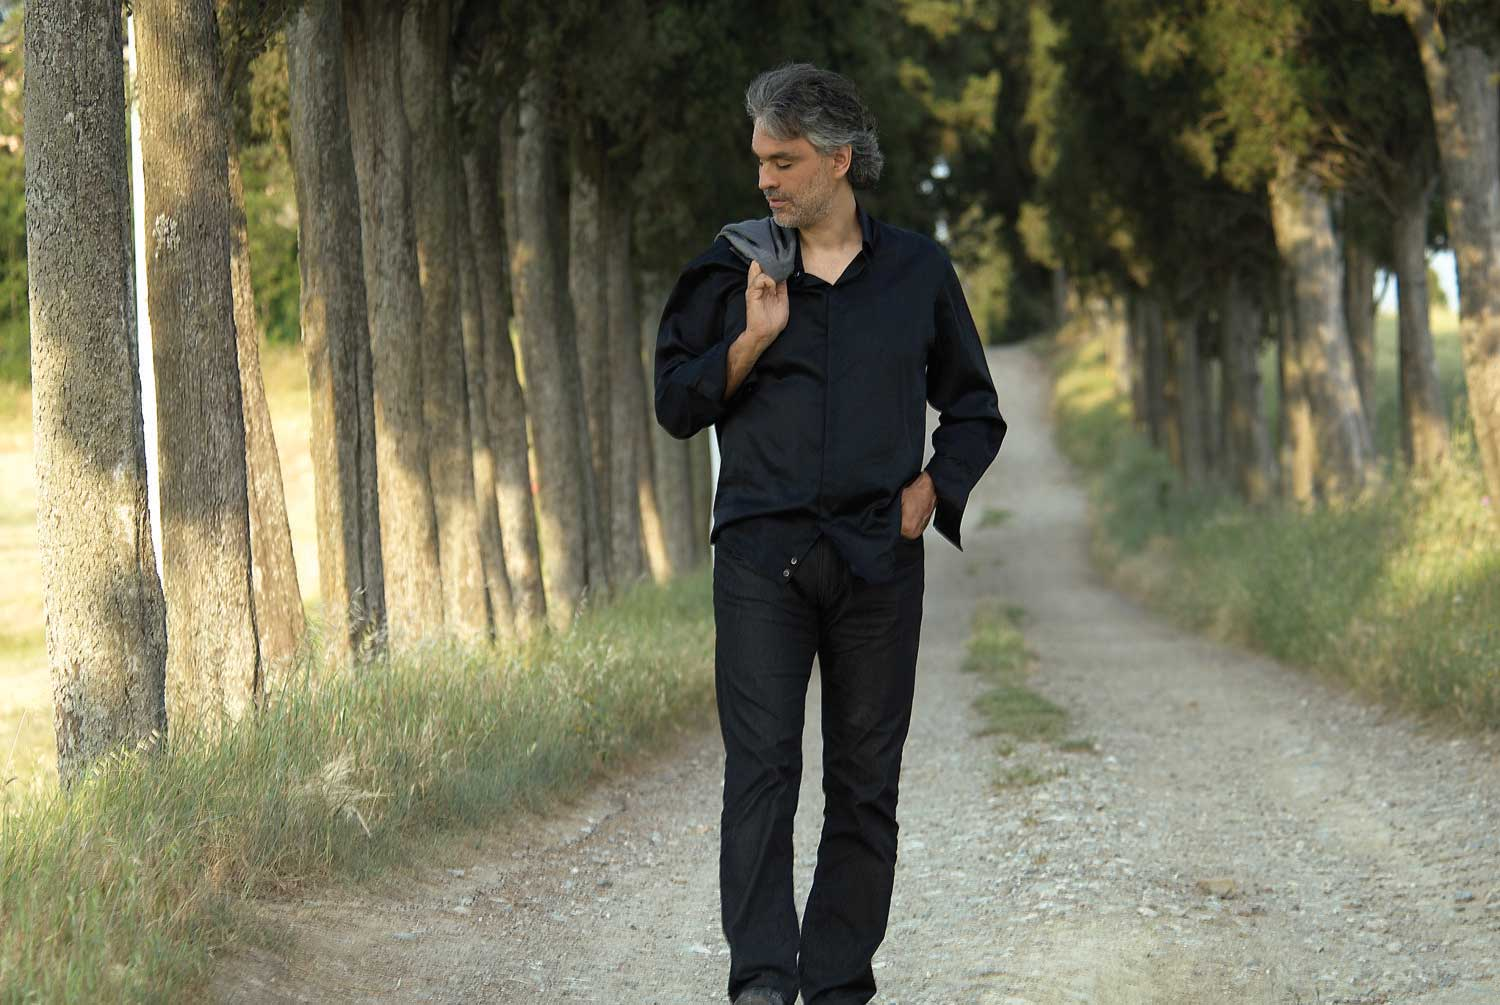 Andrea Bocelli - The Best of Andrea Bocelli: Vivere - Amazon.com Music